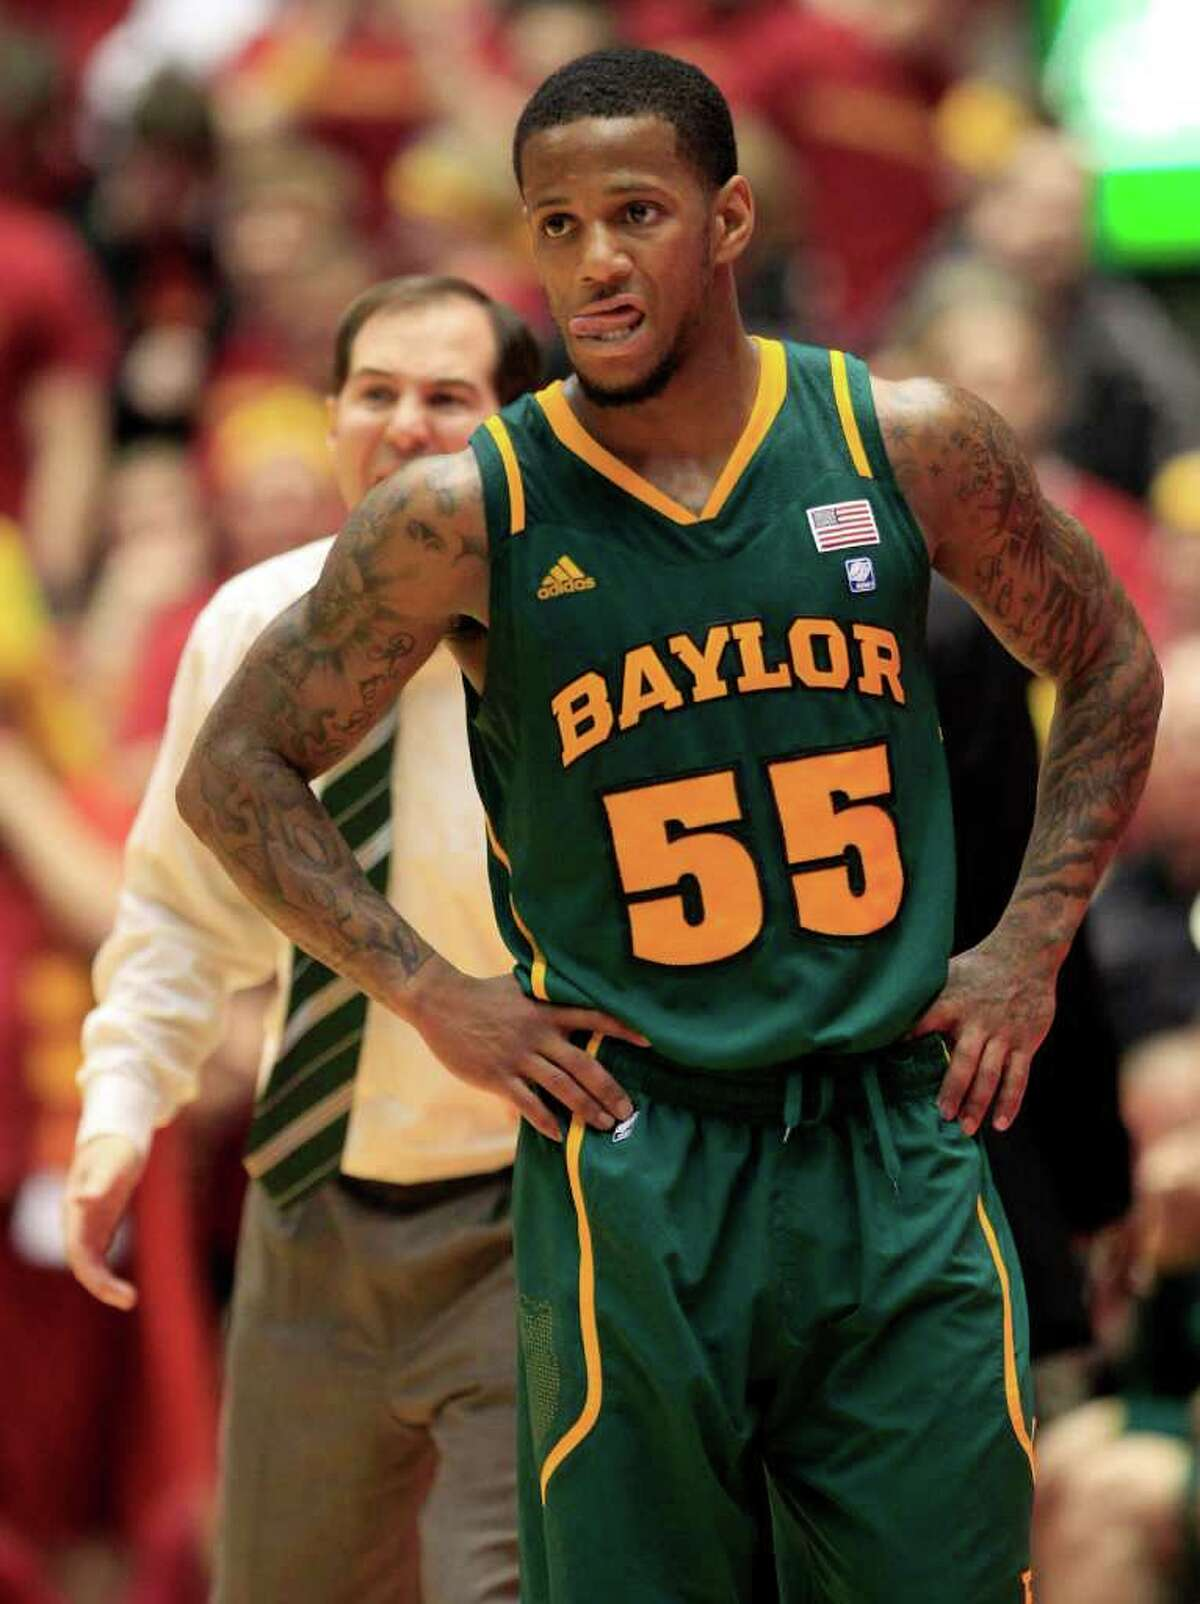 Baylor guard Pierre Jackson looks on during the second half of an NCAA college basketball game against Iowa State, Saturday, March 3, 2012, in Ames, Iowa. Iowa State won 80-72.